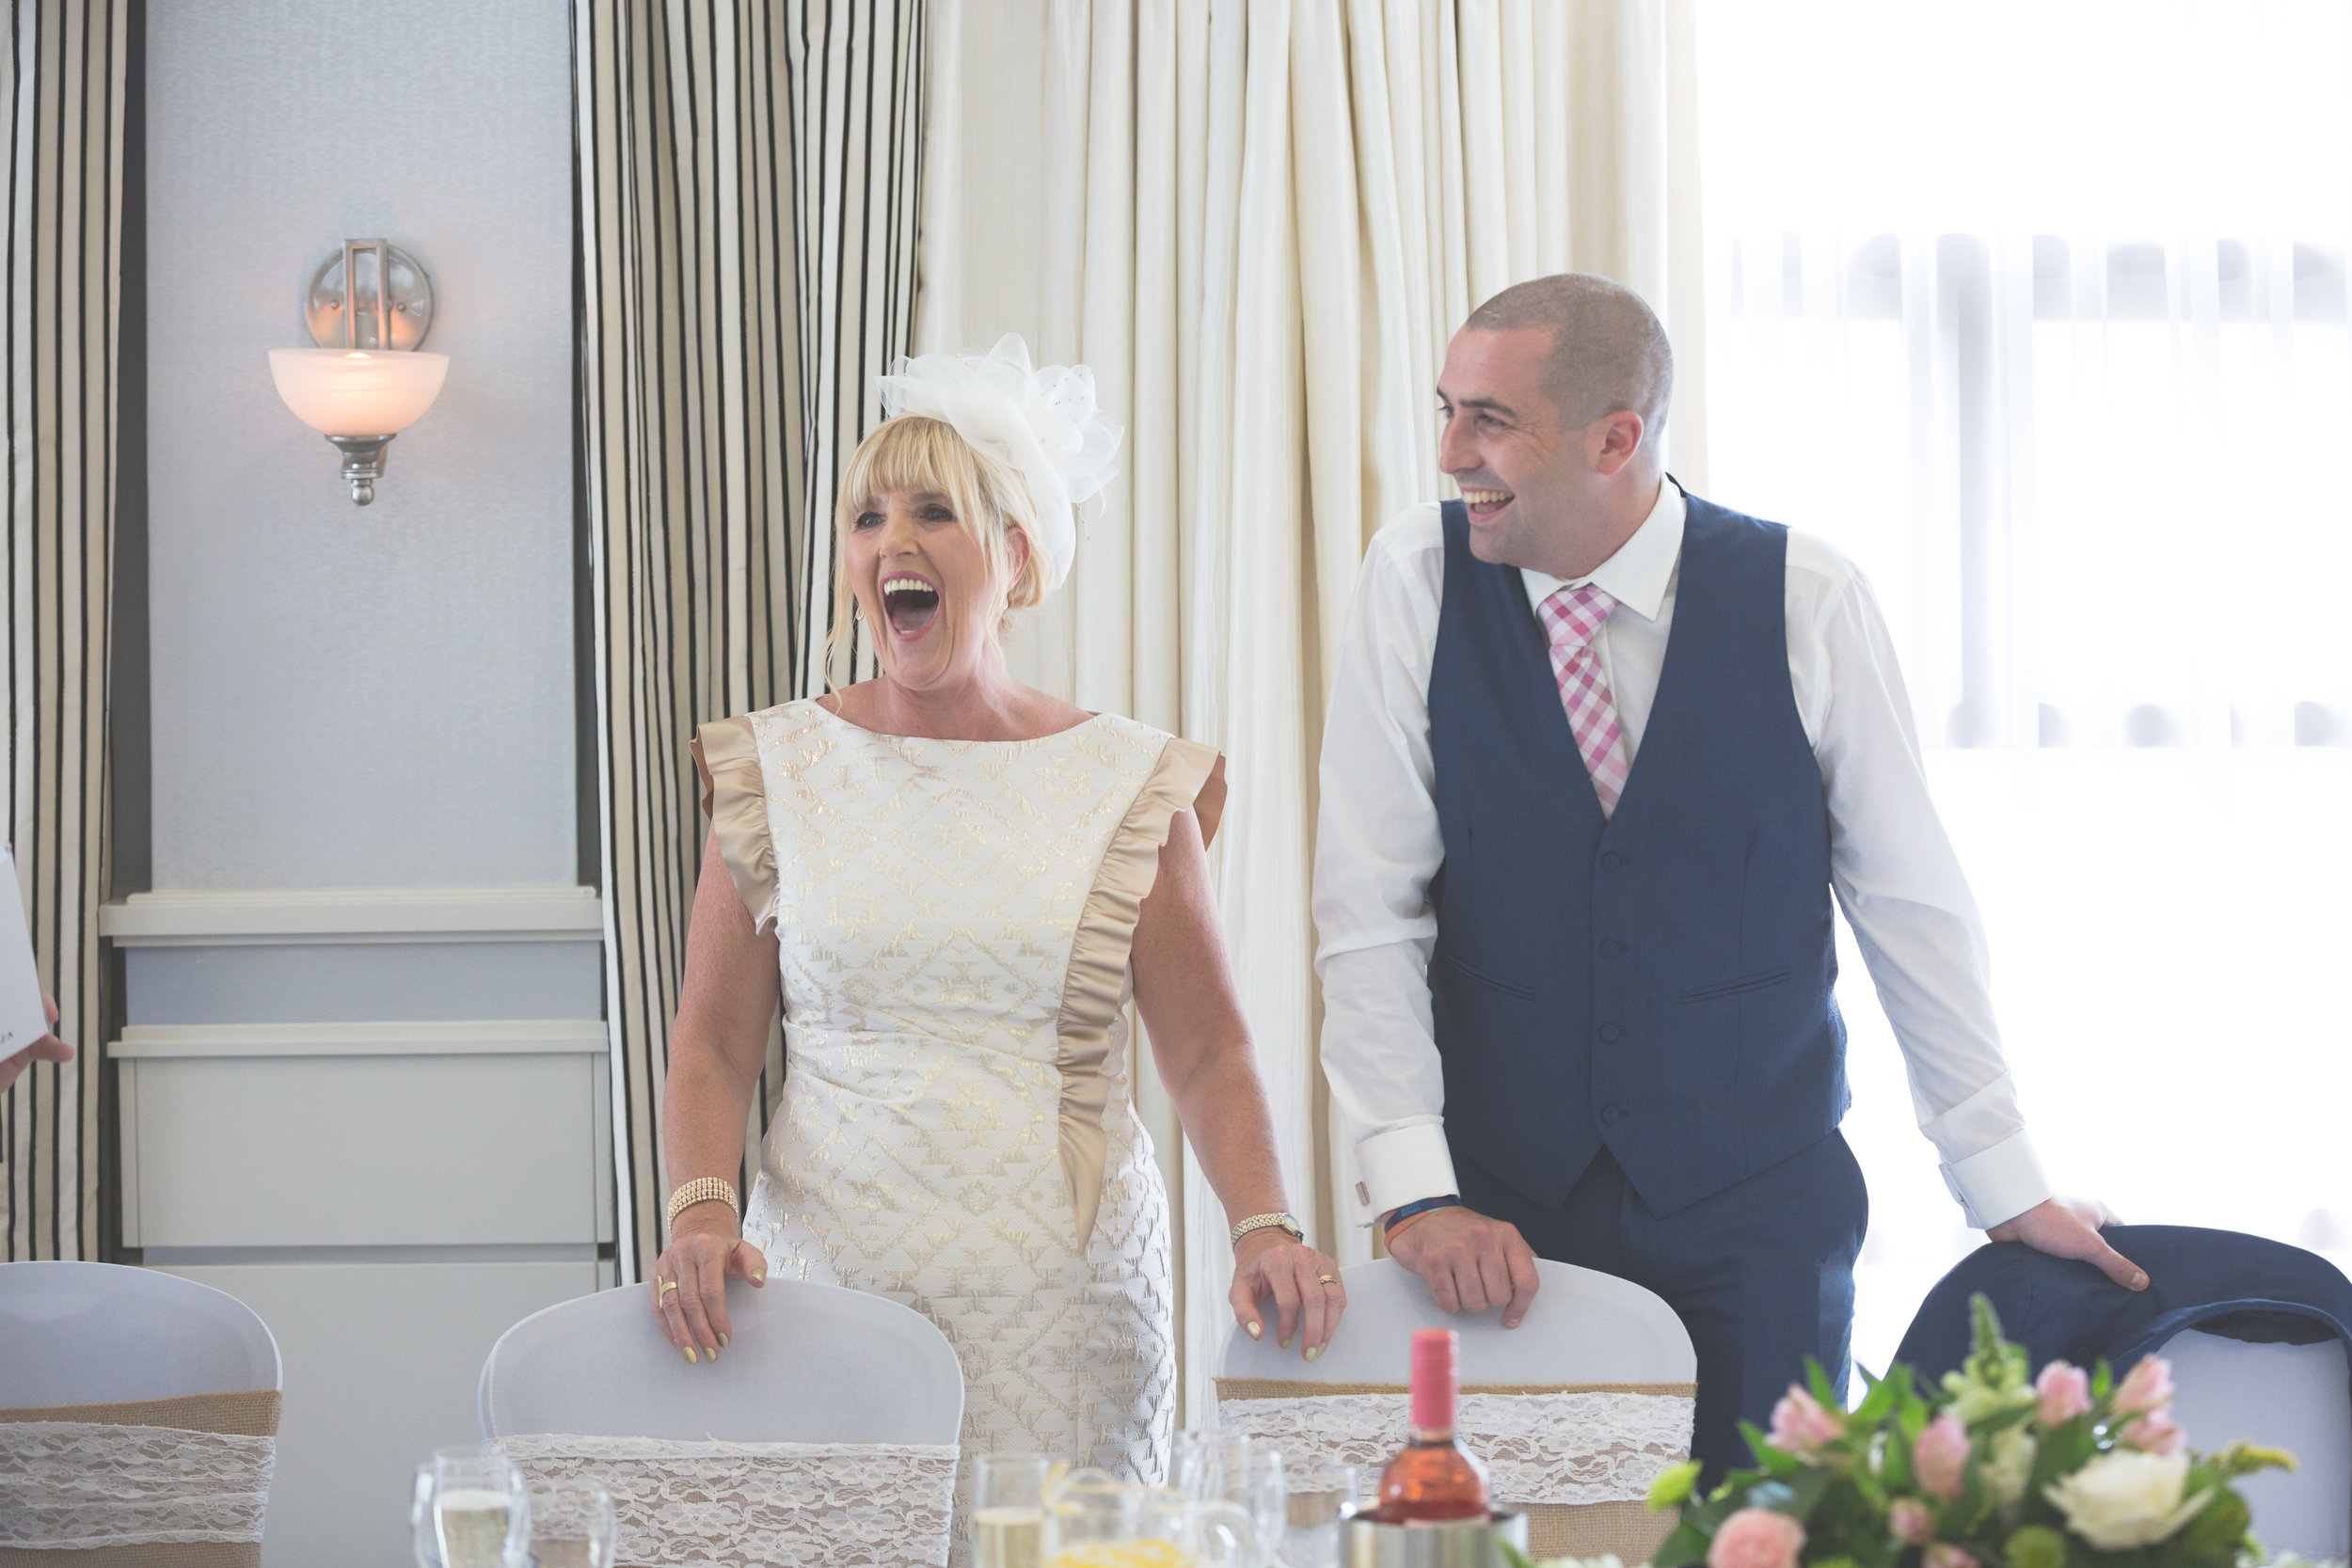 Antoinette & Stephen - Speeches | Brian McEwan Photography | Wedding Photographer Northern Ireland 2.jpg